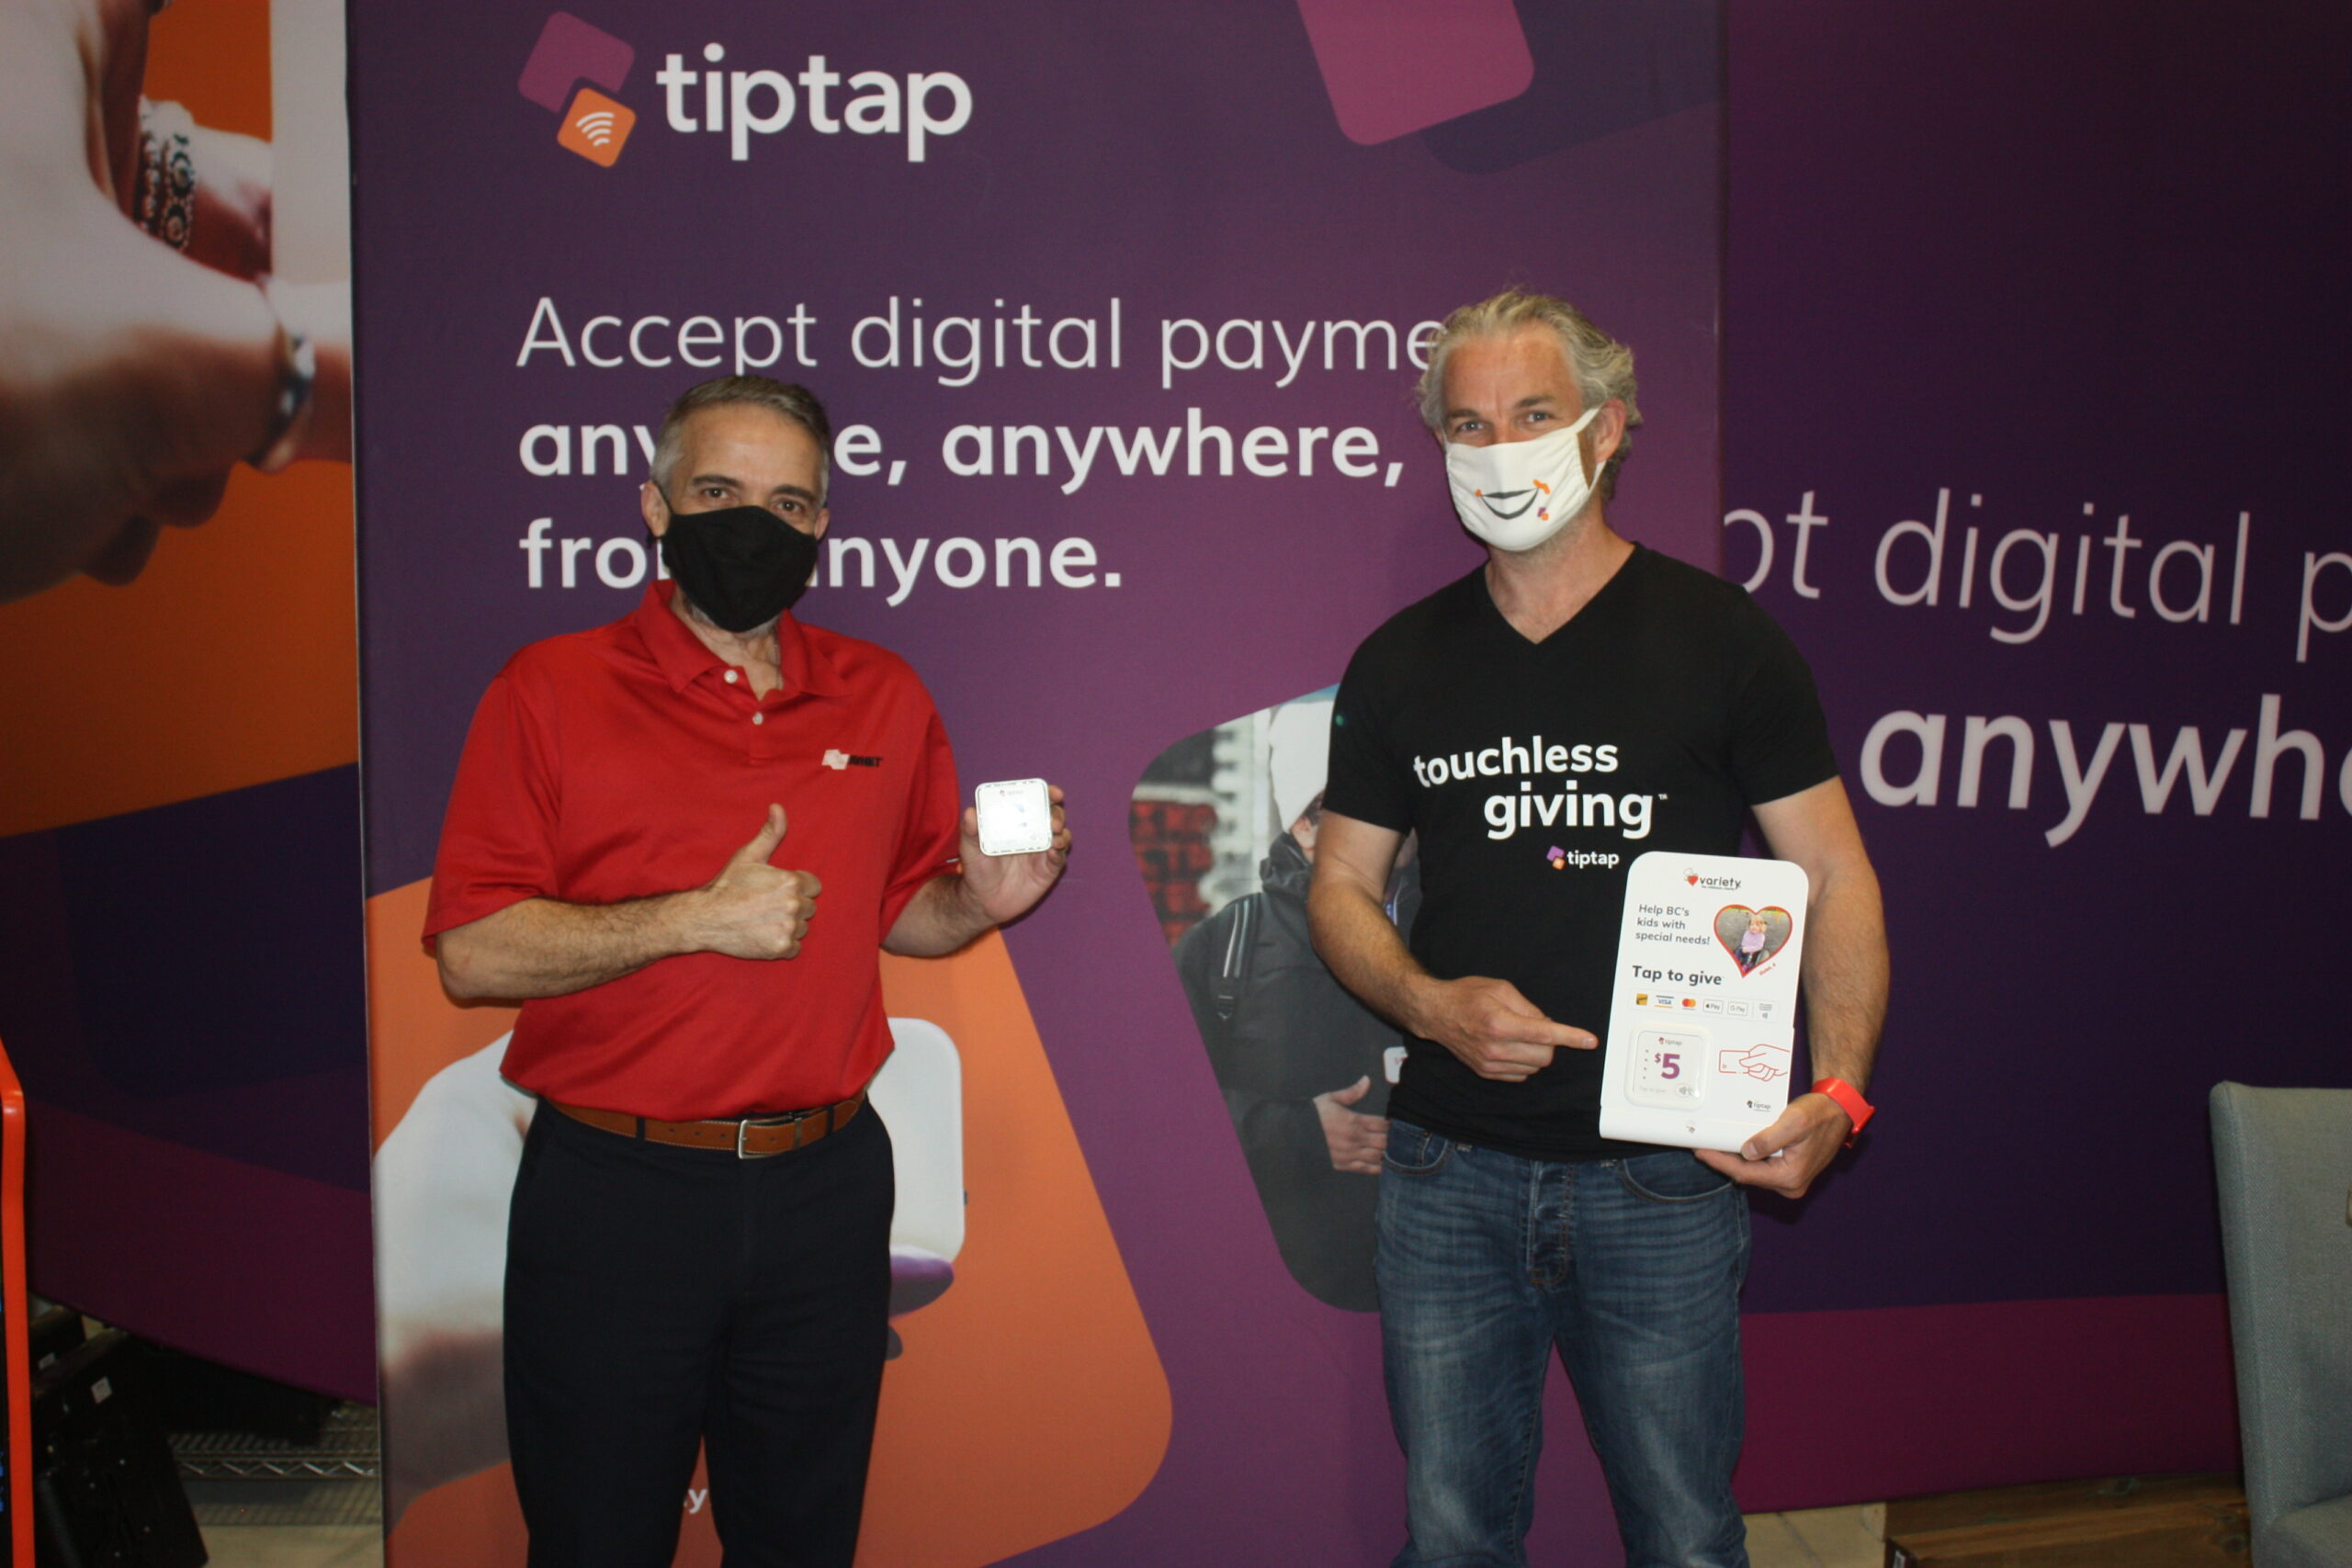 Avnet Account Manager Joe Scarfone (left) tiptap CEO, Chris Greenfield (right).